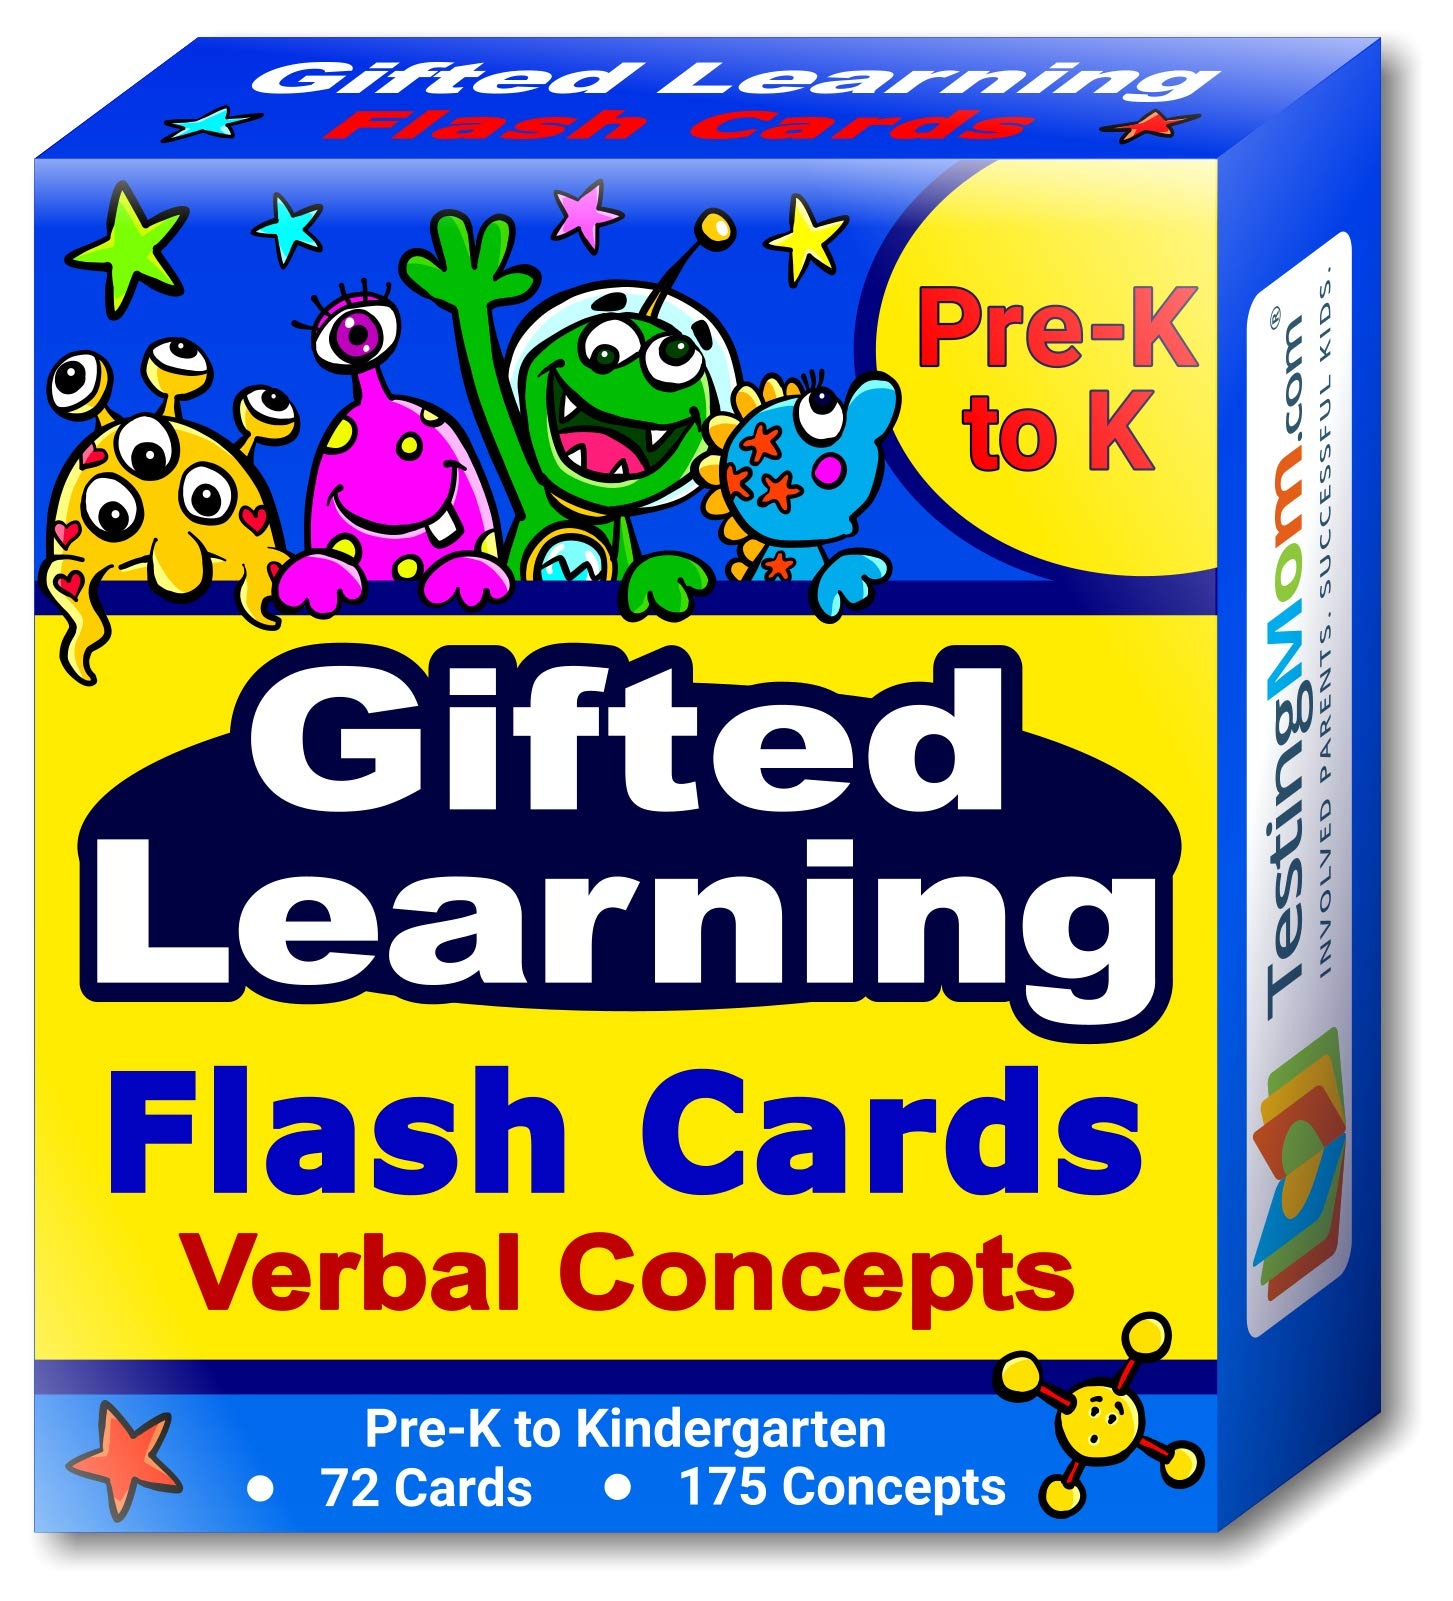 TestingMom.com Gifted Learning Flash Cards Bundle - Kindergarten-in-A-Box Set 2 - Verbal Concepts, General Knowledge, Spatial Concepts, Social Emotional Learning (Set 2) by TestingMom.com (Image #2)